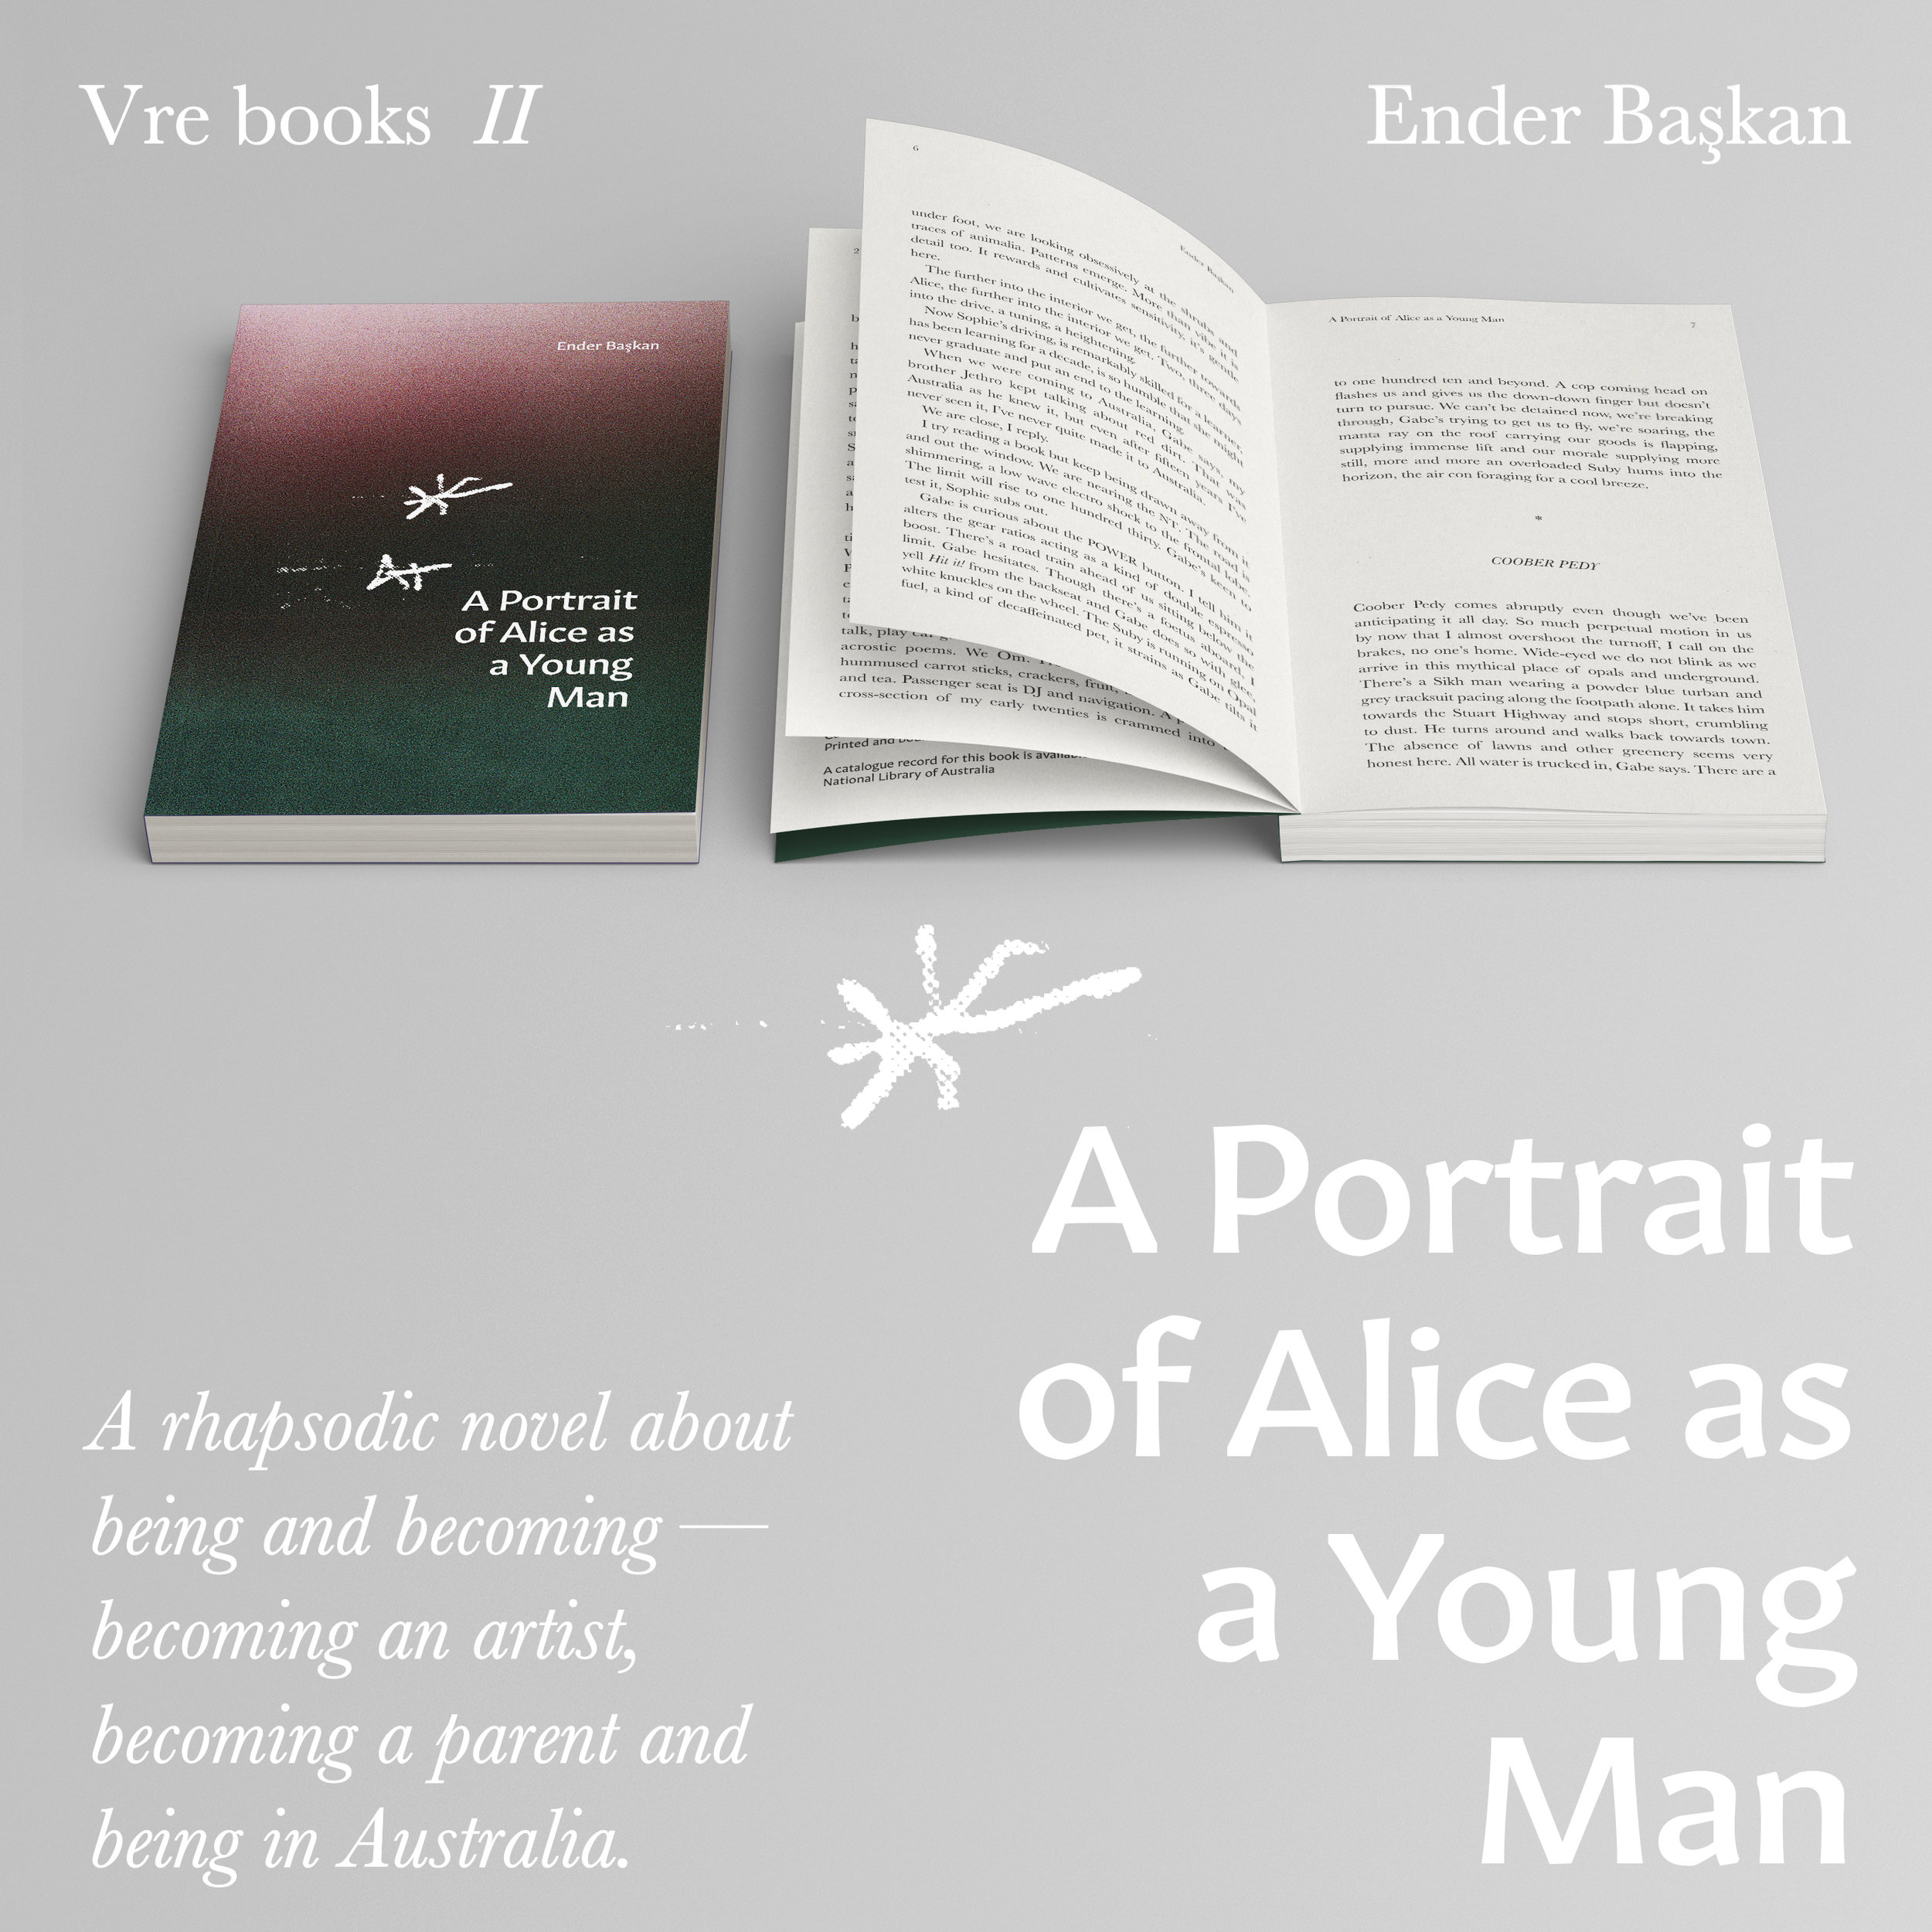 Vre_Portrait_Book_Sale.jpg